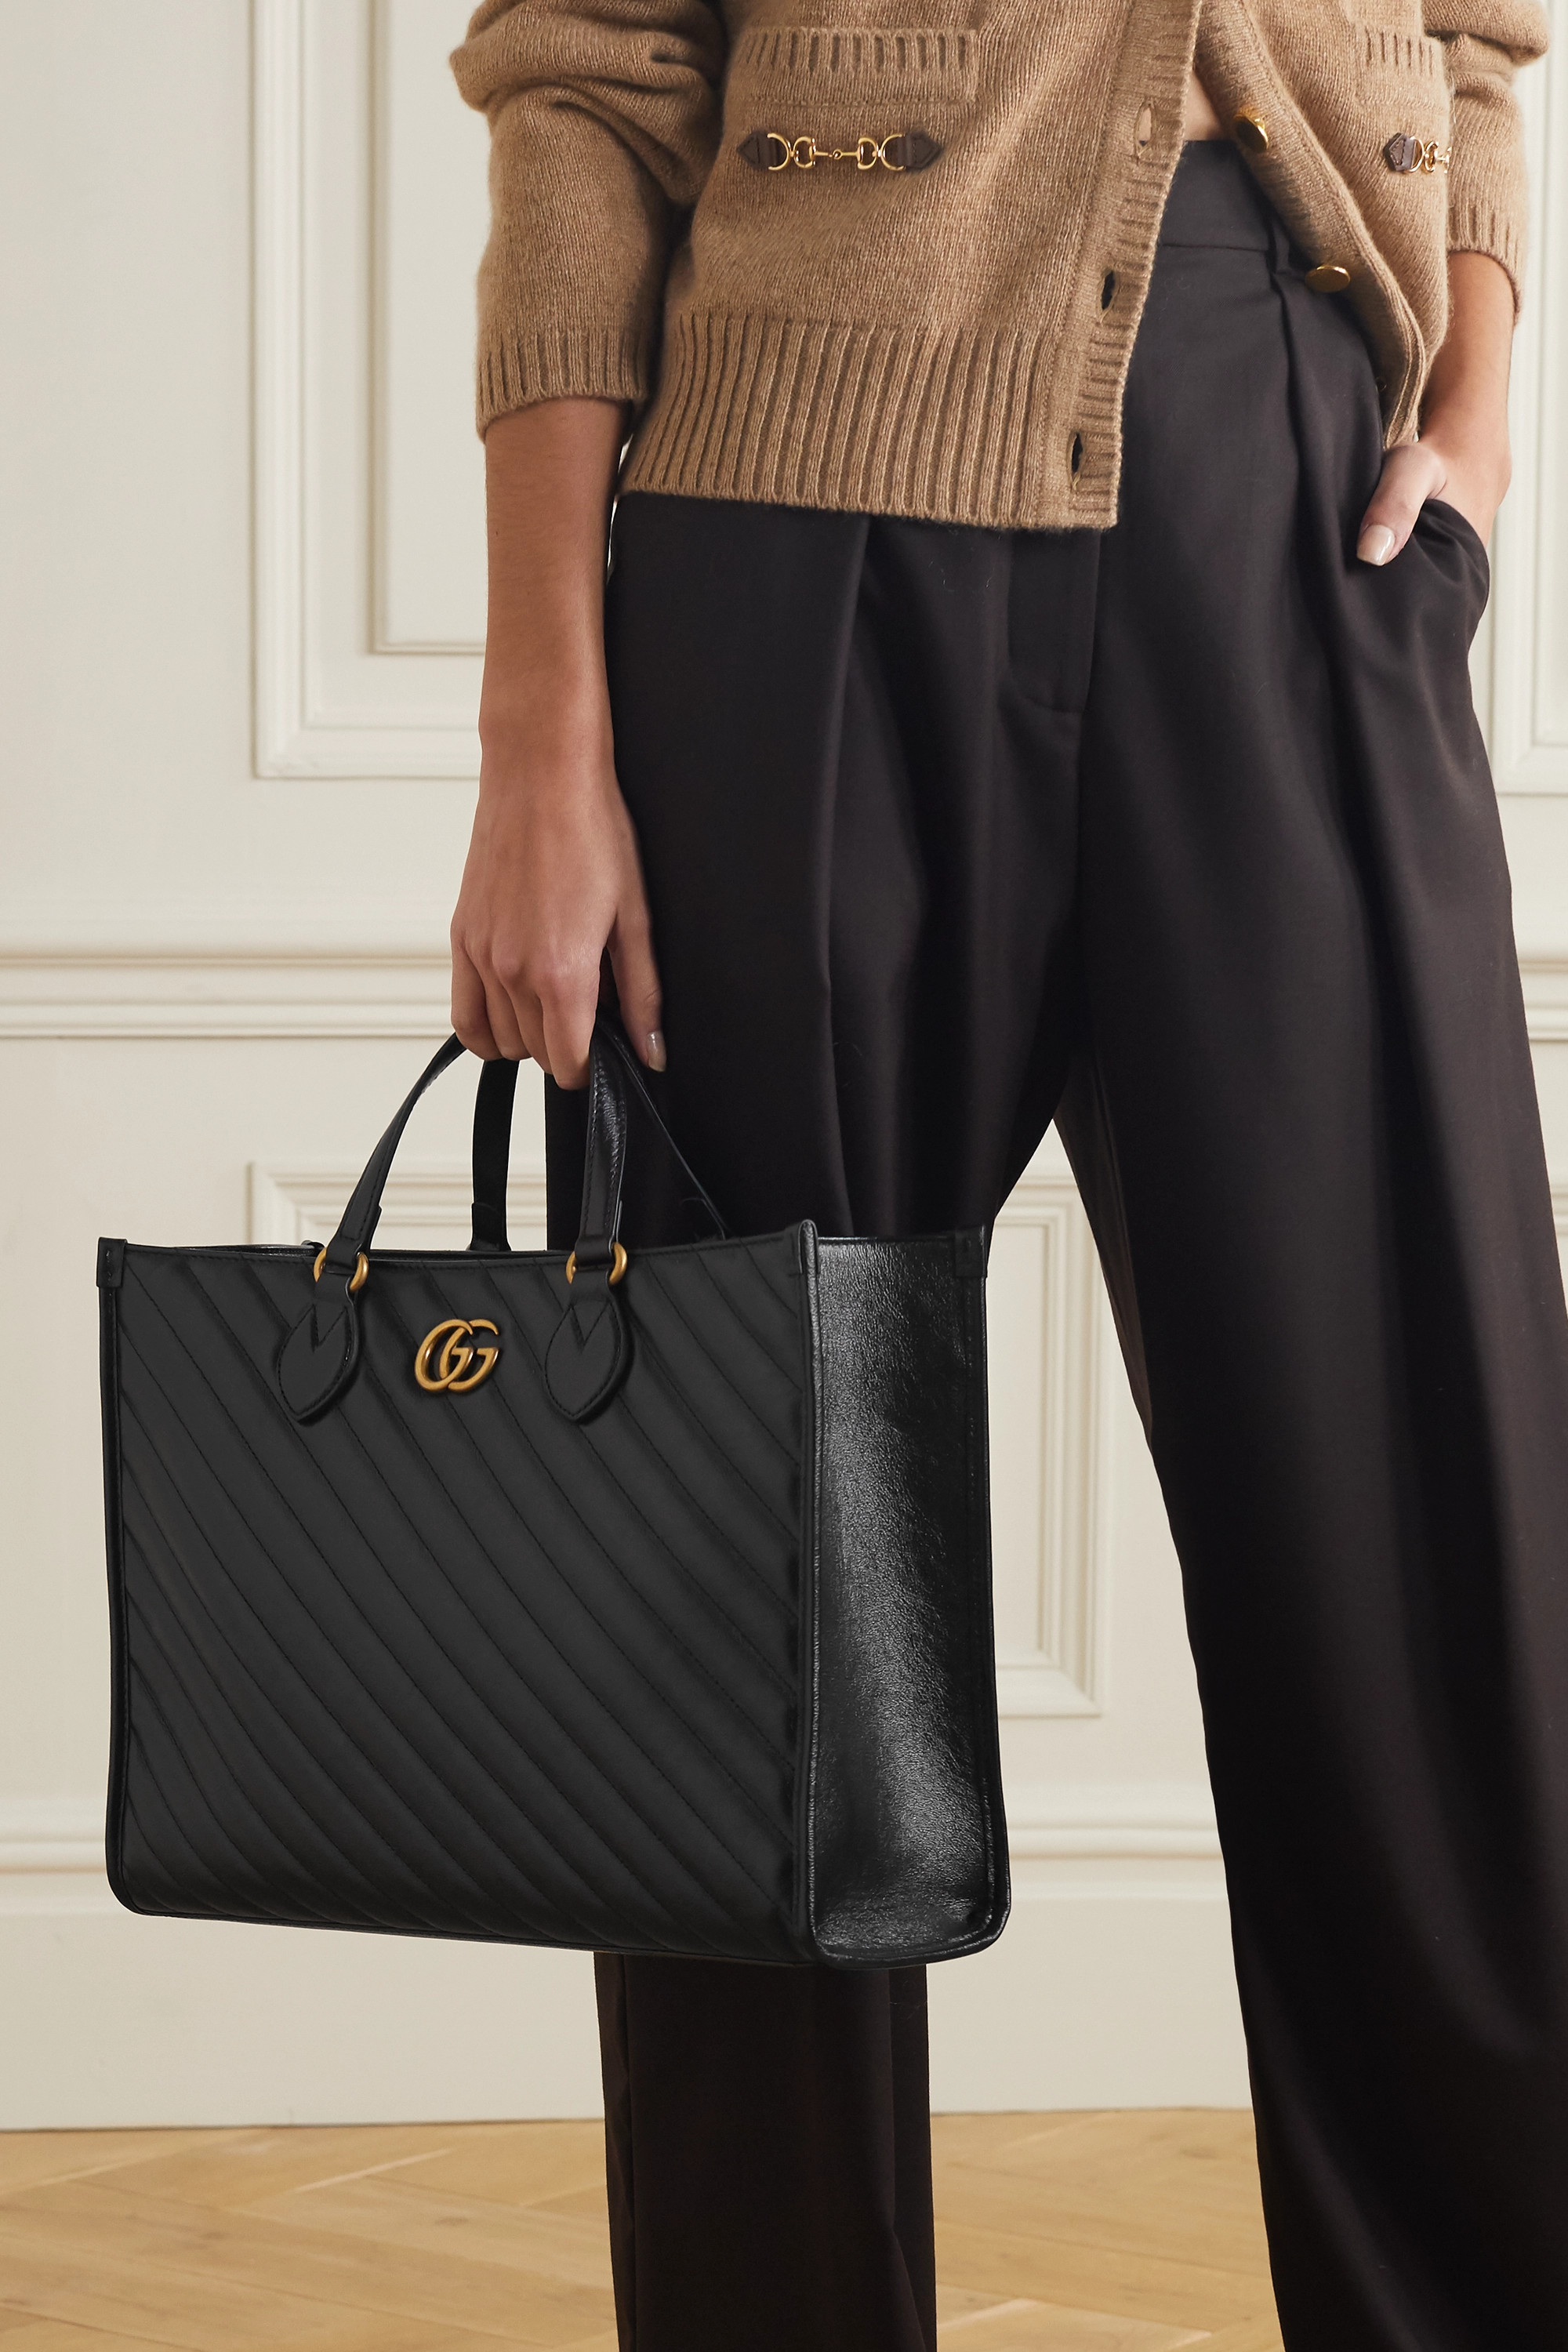 Gucci GG Marmont medium quilted leather tote